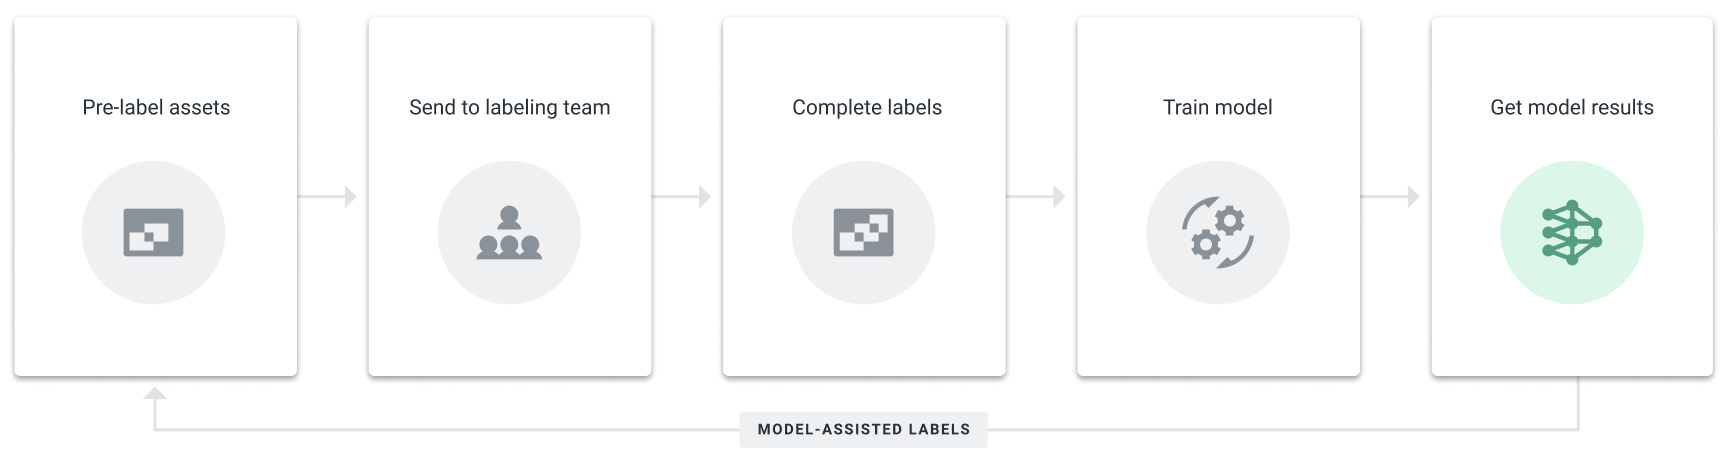 Model-assisted labeling workflow